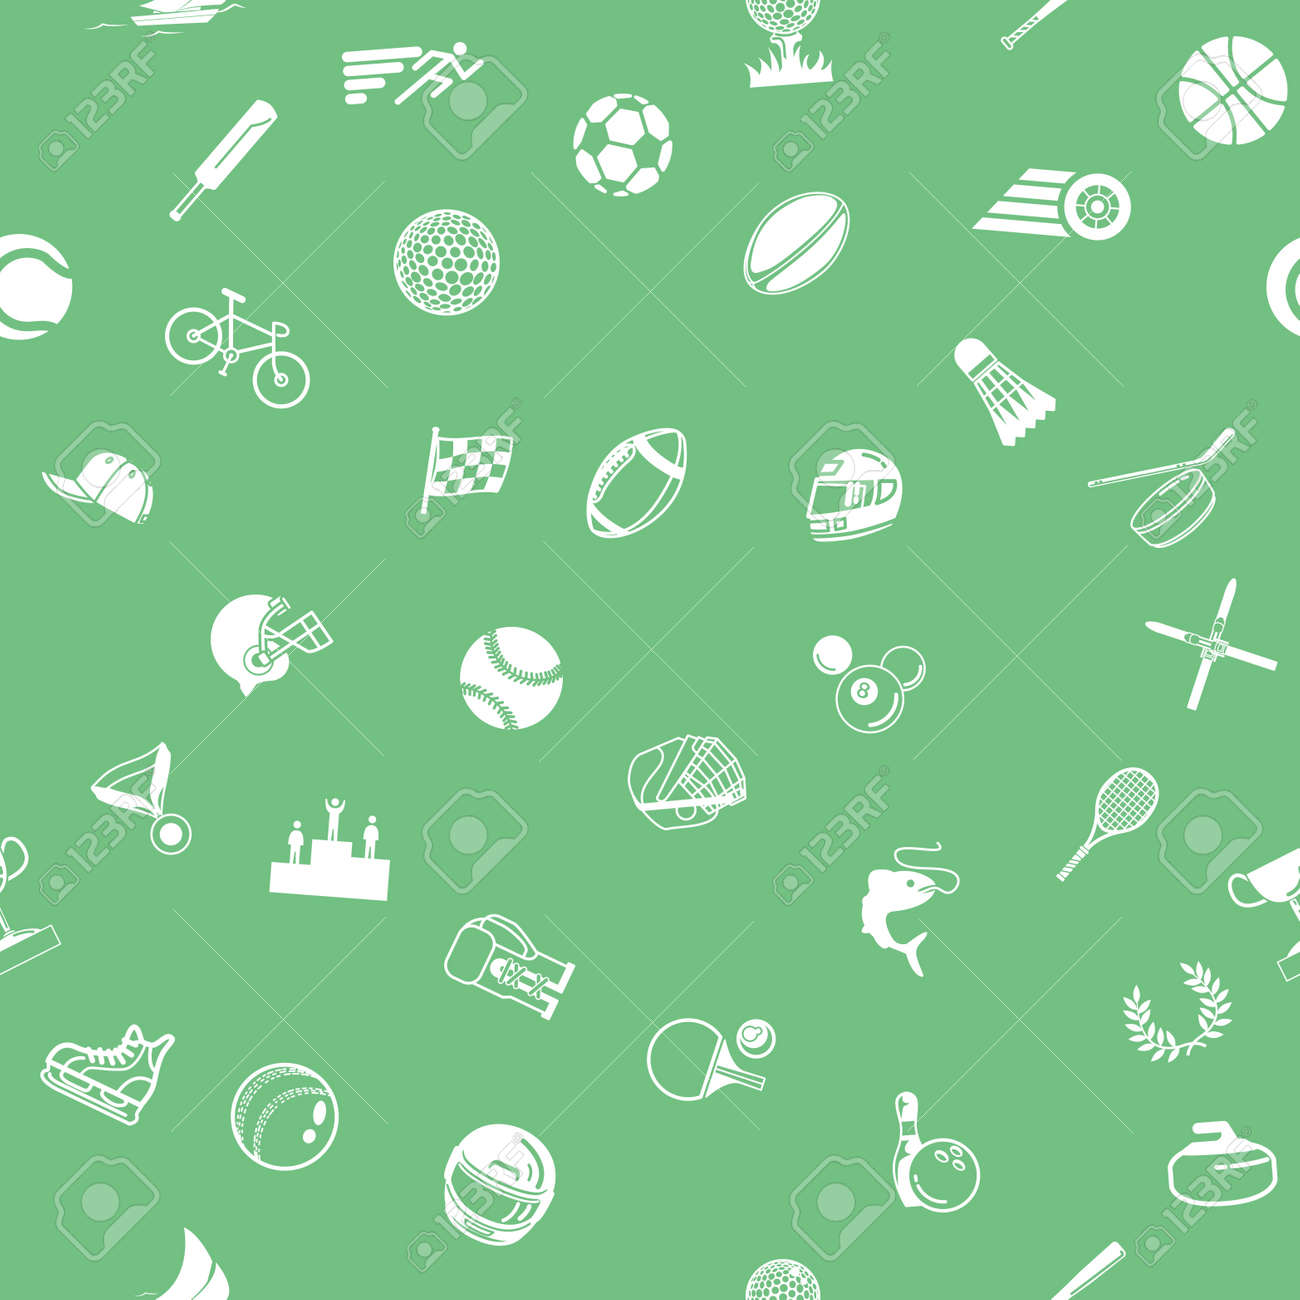 Background image html no repeat - A Repeating Seamless Sport Background Tile Texture With Lots Of Drawings Of Different Sports Icons Stock